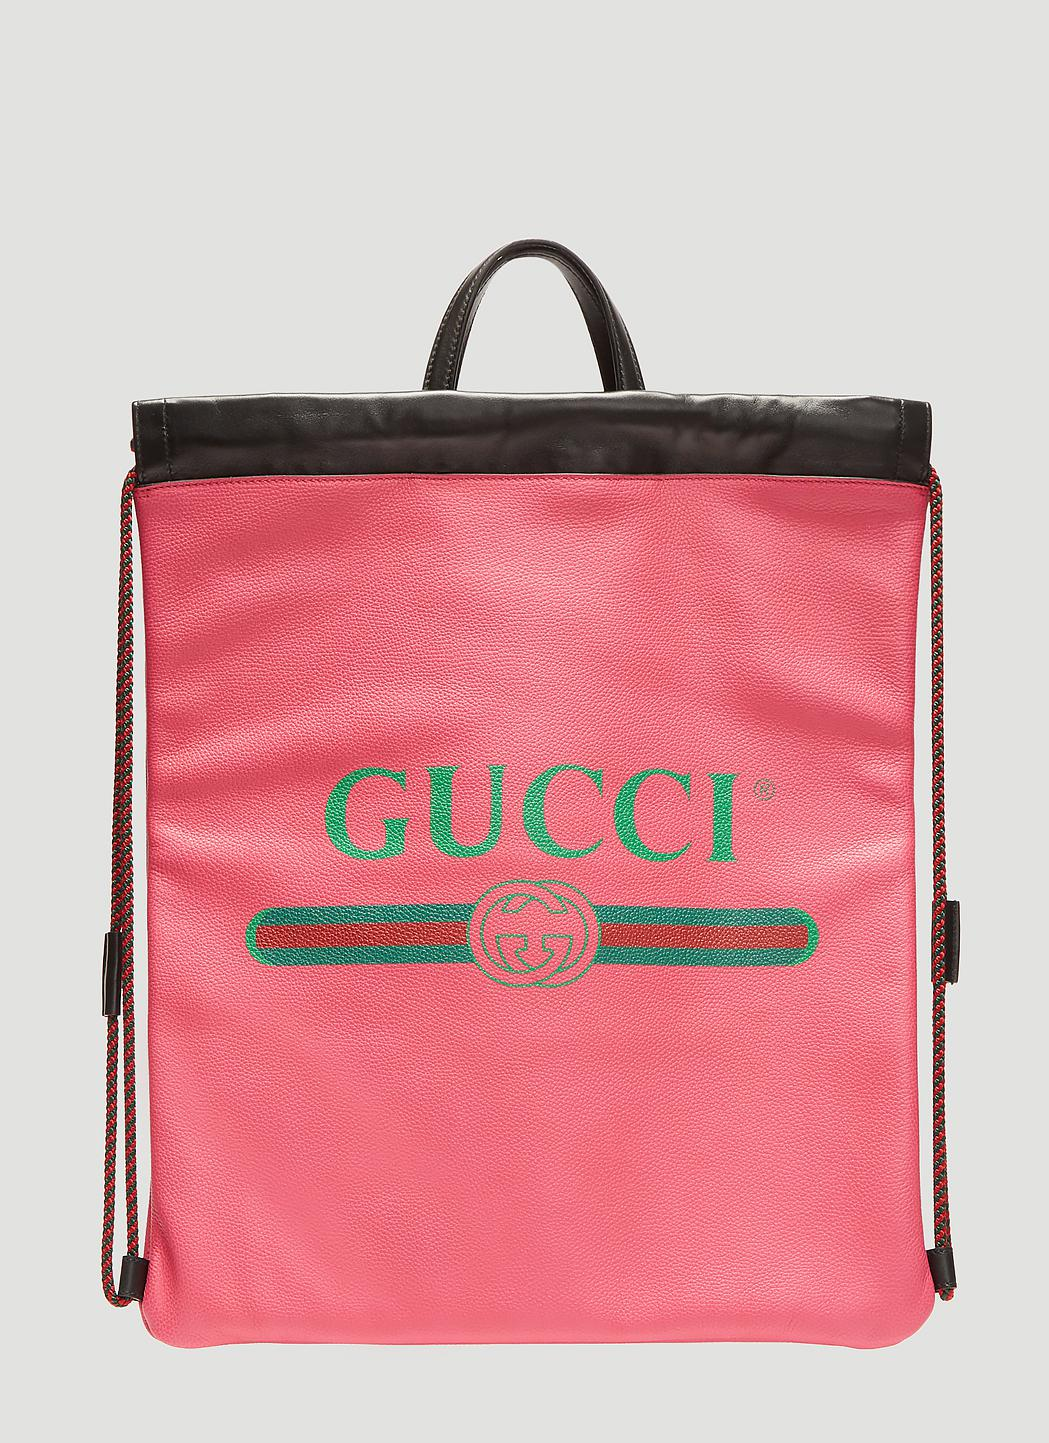 Gucci Pink Logo Print Leather Backpack in Pink for Men - Save 15% - Lyst 271f9b9da4a3b